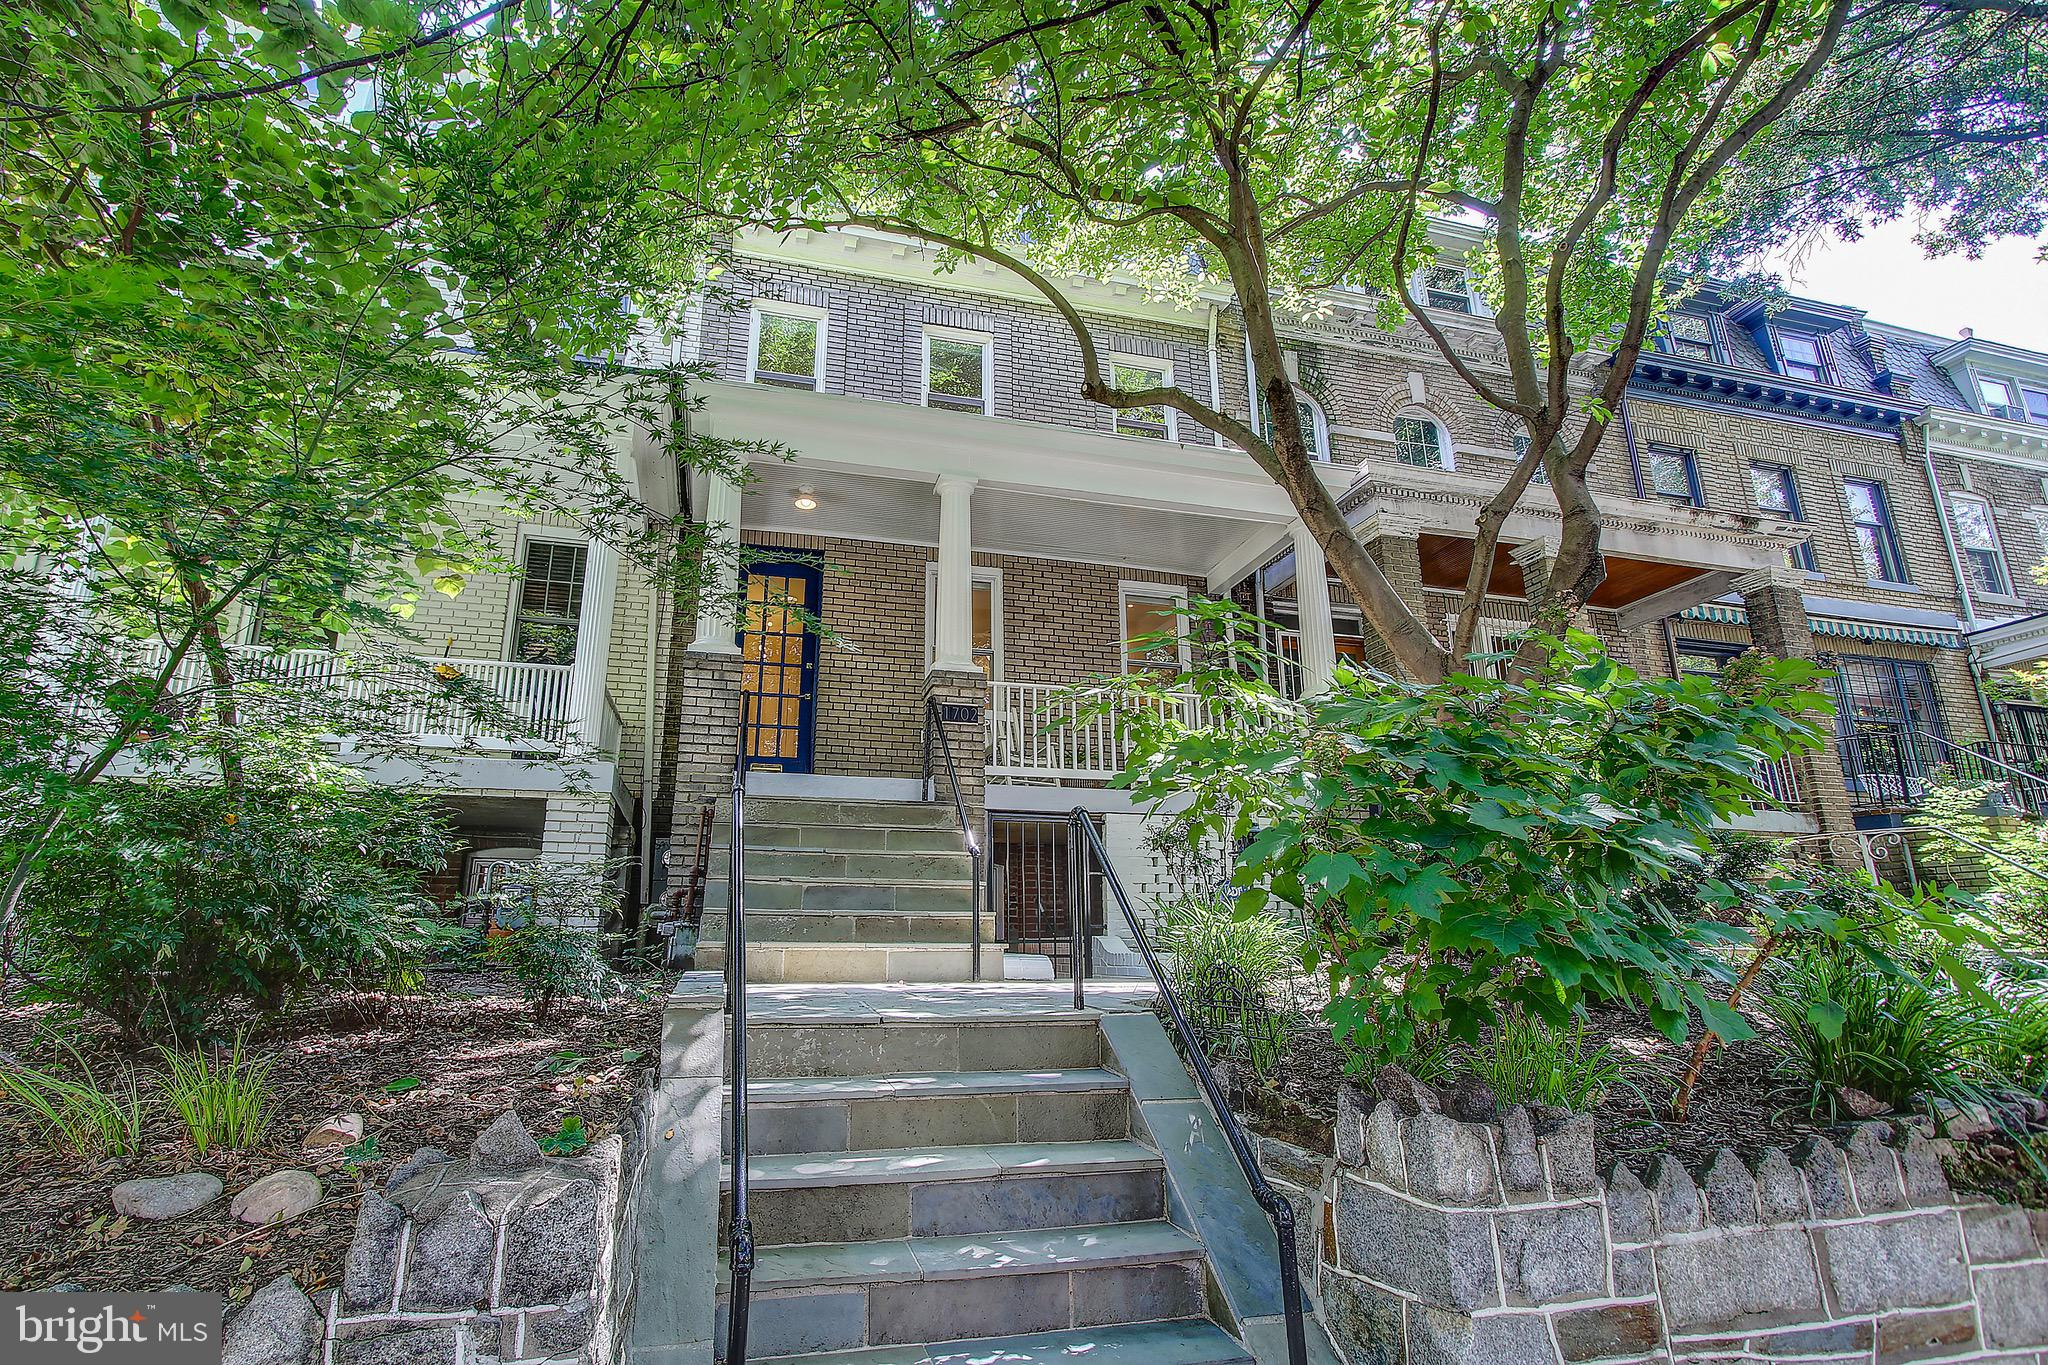 Step up to a lifestyle of understated luxury, step into 1702 Lanier Pl NW. This beautifully and lovingly renovated row house is located in the heart of Lanier Heights. This boutique neighborhood straddles Adams Morgan and Mount Pleasant. The extensively renovated main level (2015), provides curated fixtures and appliances in harmony with the home's character. This spacious sun-filled home has 4 BRs and 2BRs on the upper level. The lower level nanny/in-law suite is truly exceptional. It is complete with its own kitchen, laundry, full bath, bedroom, living area with large sliding glass door to its own patio.